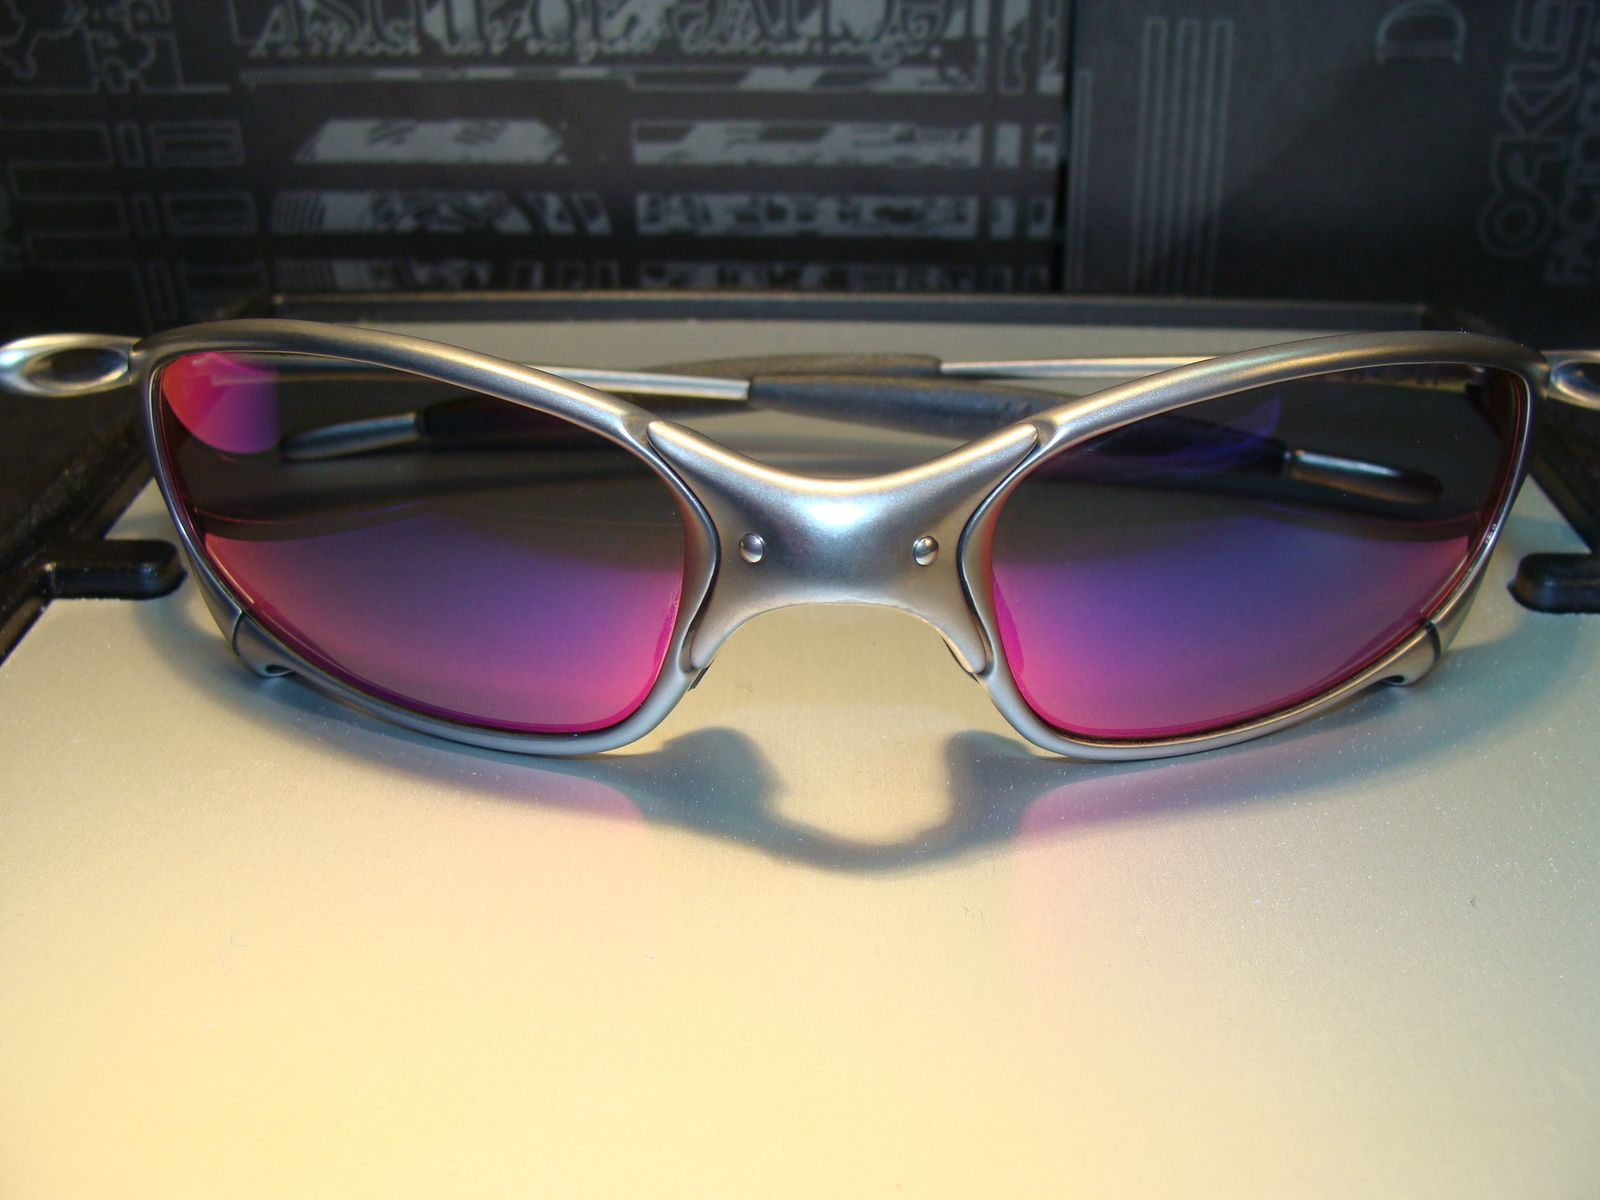 PRICE DROP: $75 Custom Cut Pos Red Lenses For Juliet, Brand New Never Worn - dsc03642p.jpg